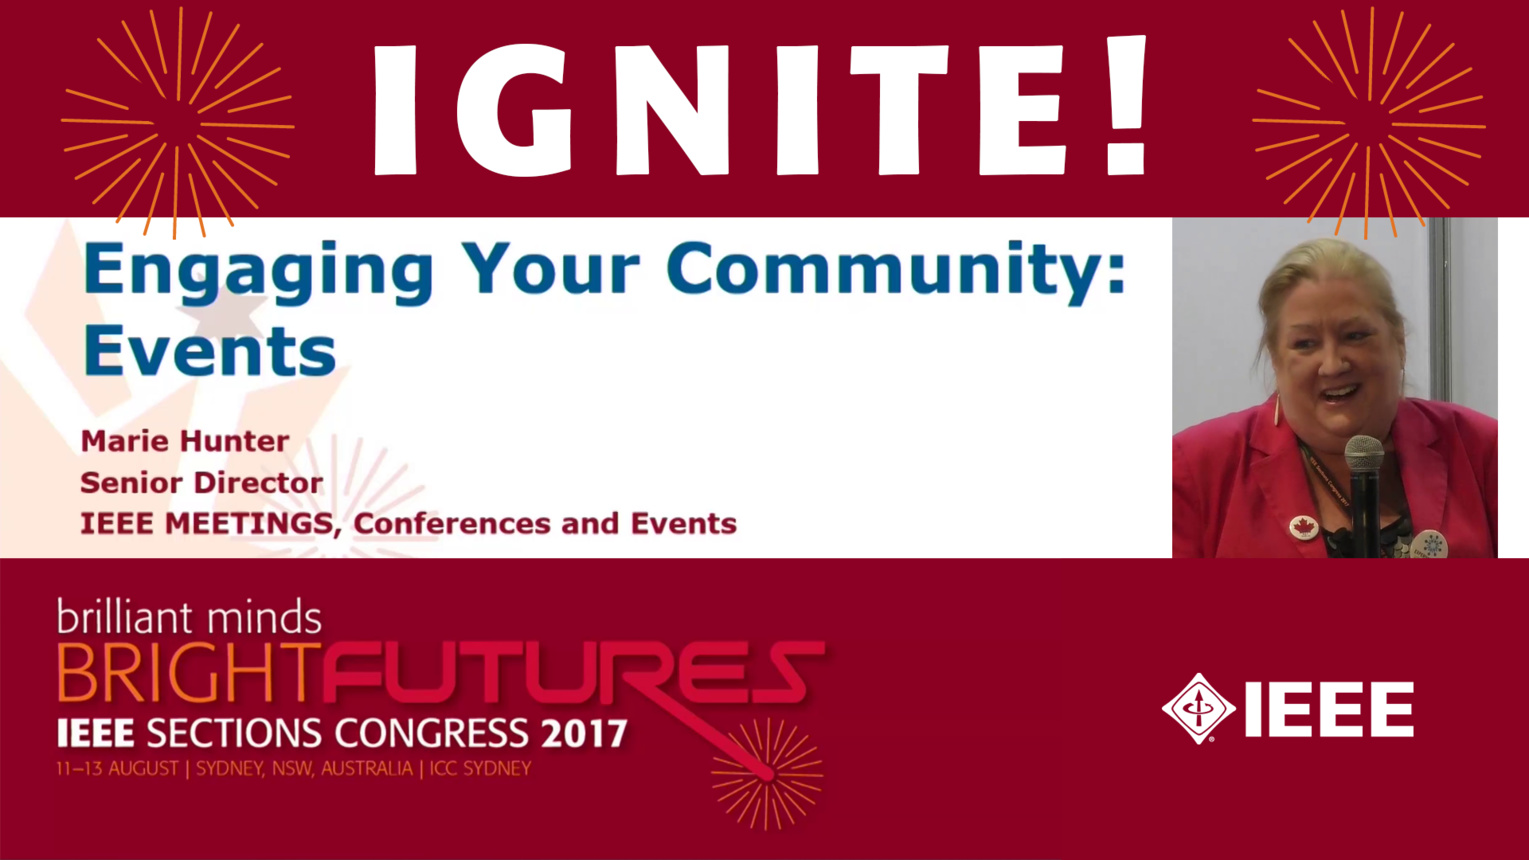 Engaging Your Community: Events - Marie Hunter - Ignite: Sections Congress 2017